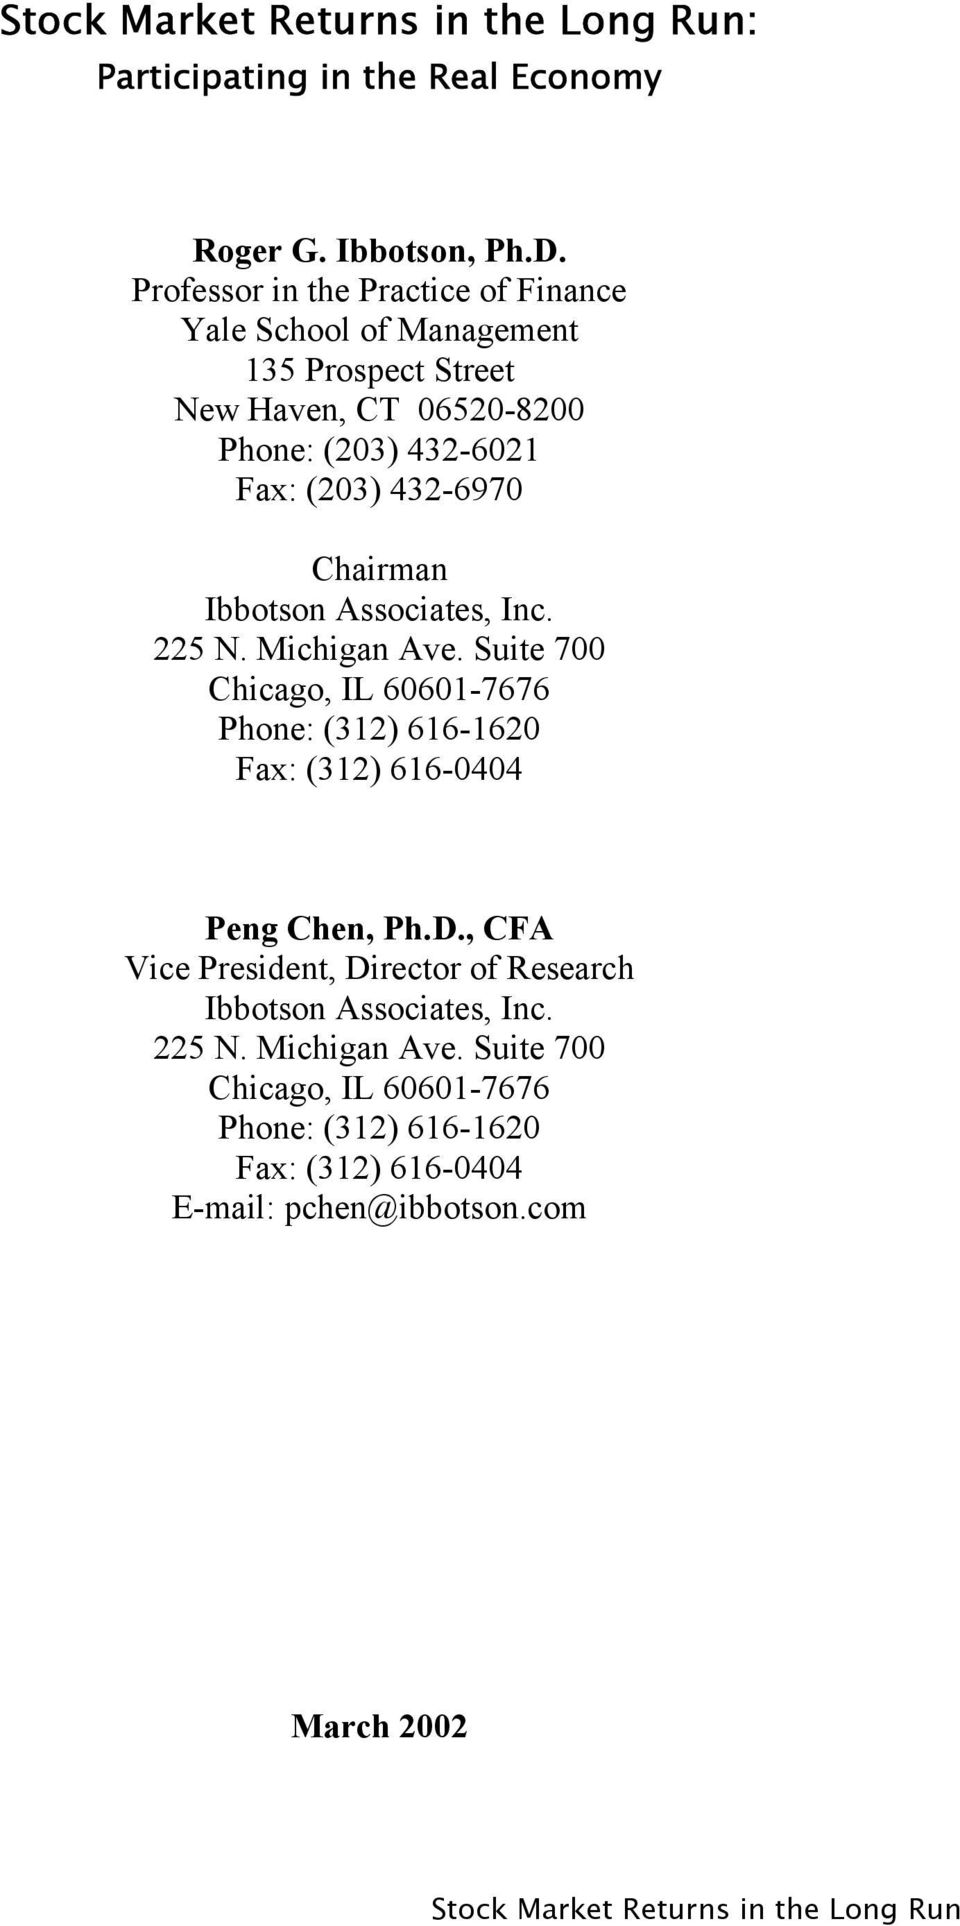 Chairman Ibboson Associaes, Inc. 225 N. Michigan Ave. Suie 700 Chicago, IL 60601-7676 Phone: (312) 616-1620 Fax: (312) 616-0404 Peng Chen, Ph.D.